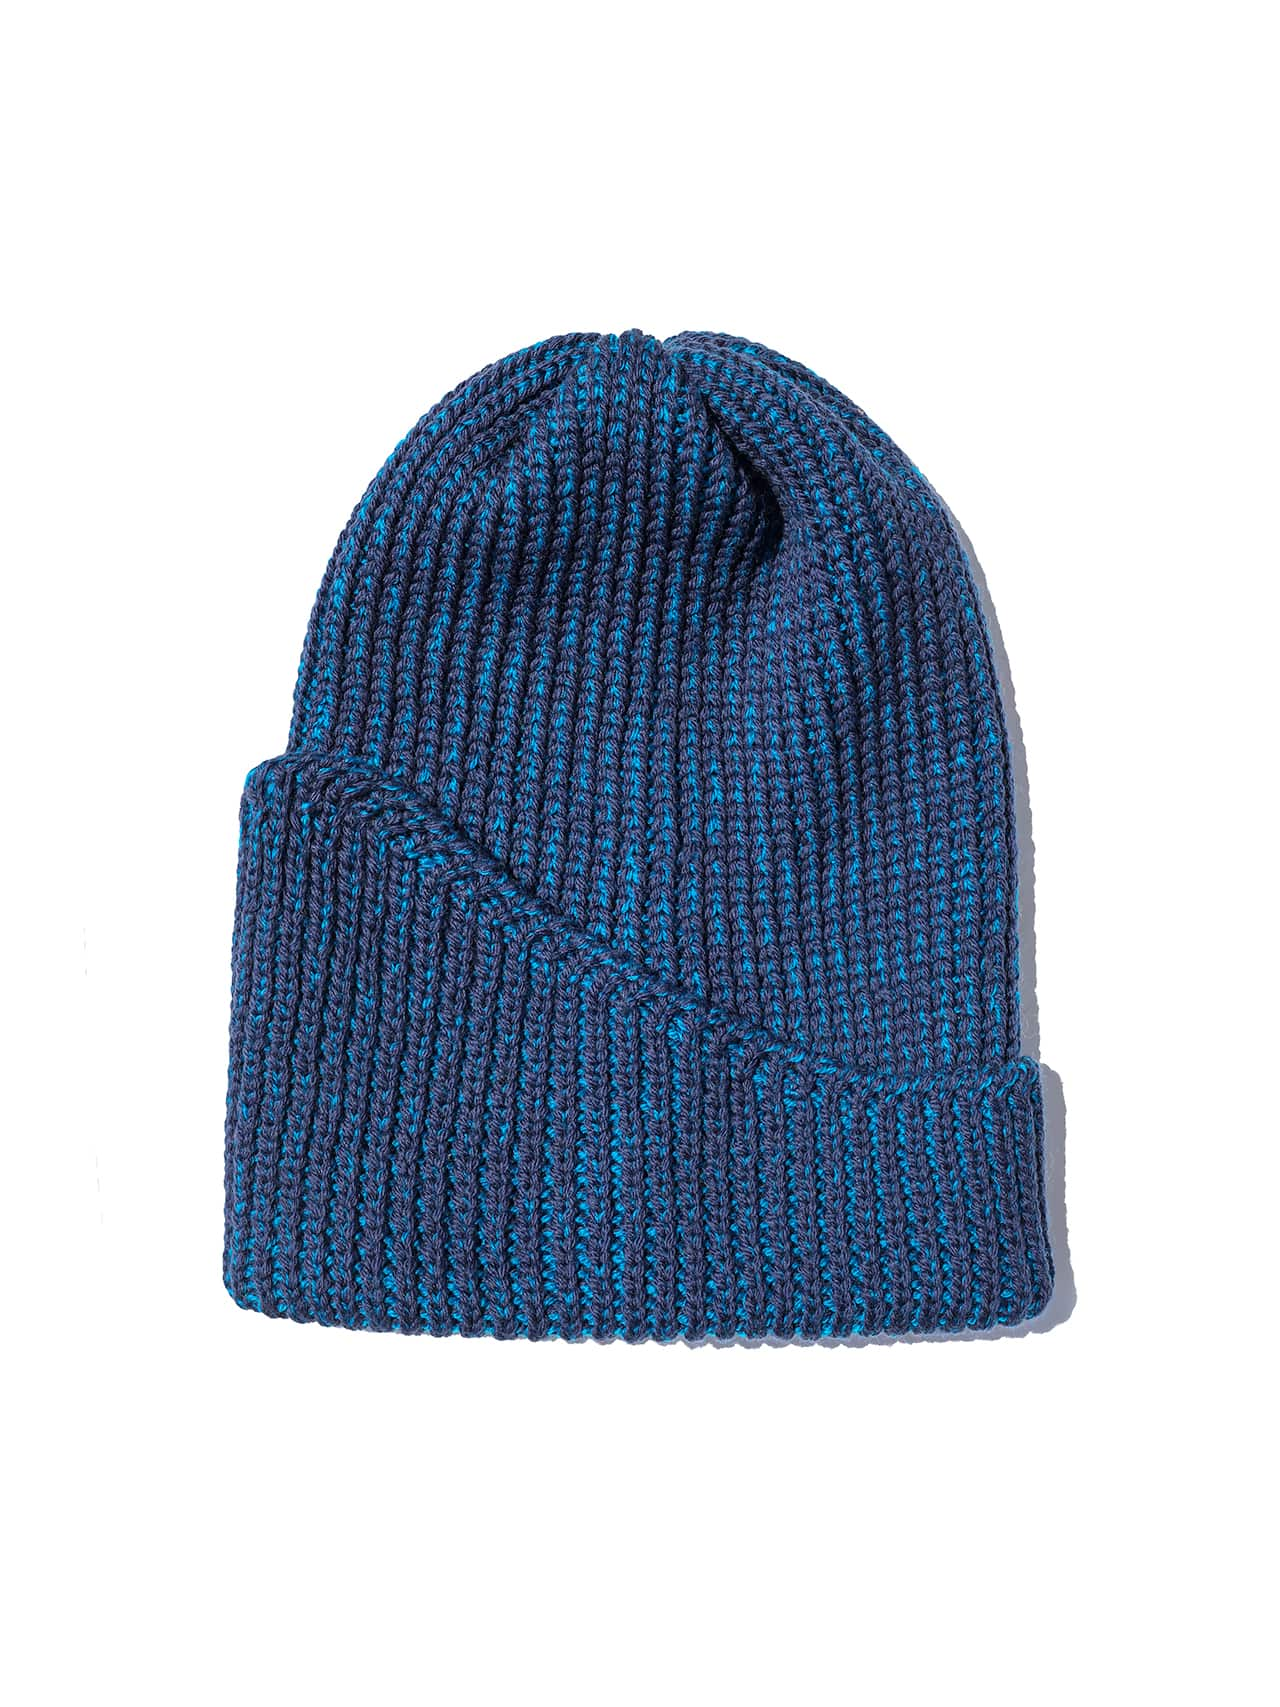 Reshaped Beanie merino - Electric Blue